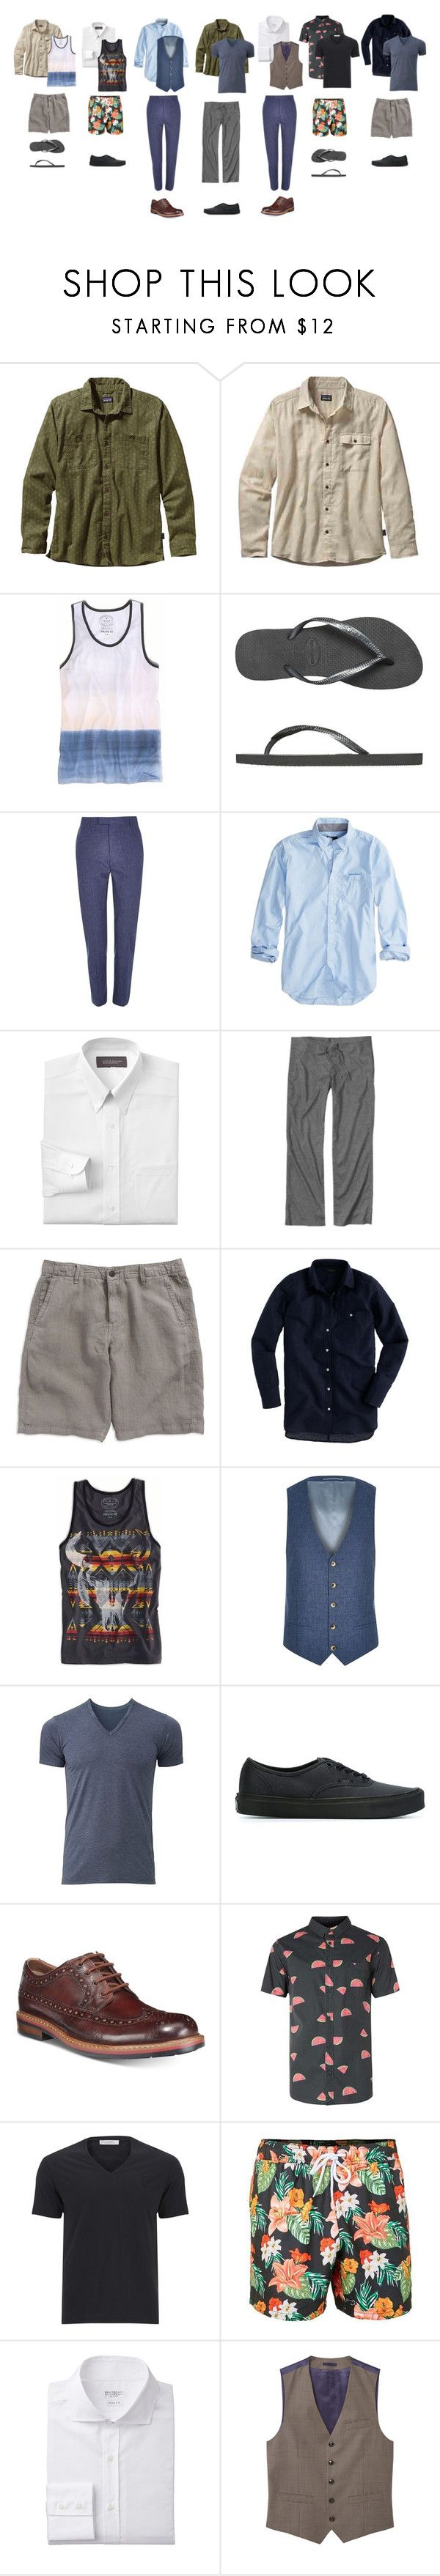 """""""Summertime"""" by rosyapple ❤ liked on Polyvore featuring Patagonia, American Eagle Outfitters, Havaianas, River Island, Croft & Barrow, prAna, Lucky Brand, J.Crew, Uniqlo and Vans"""